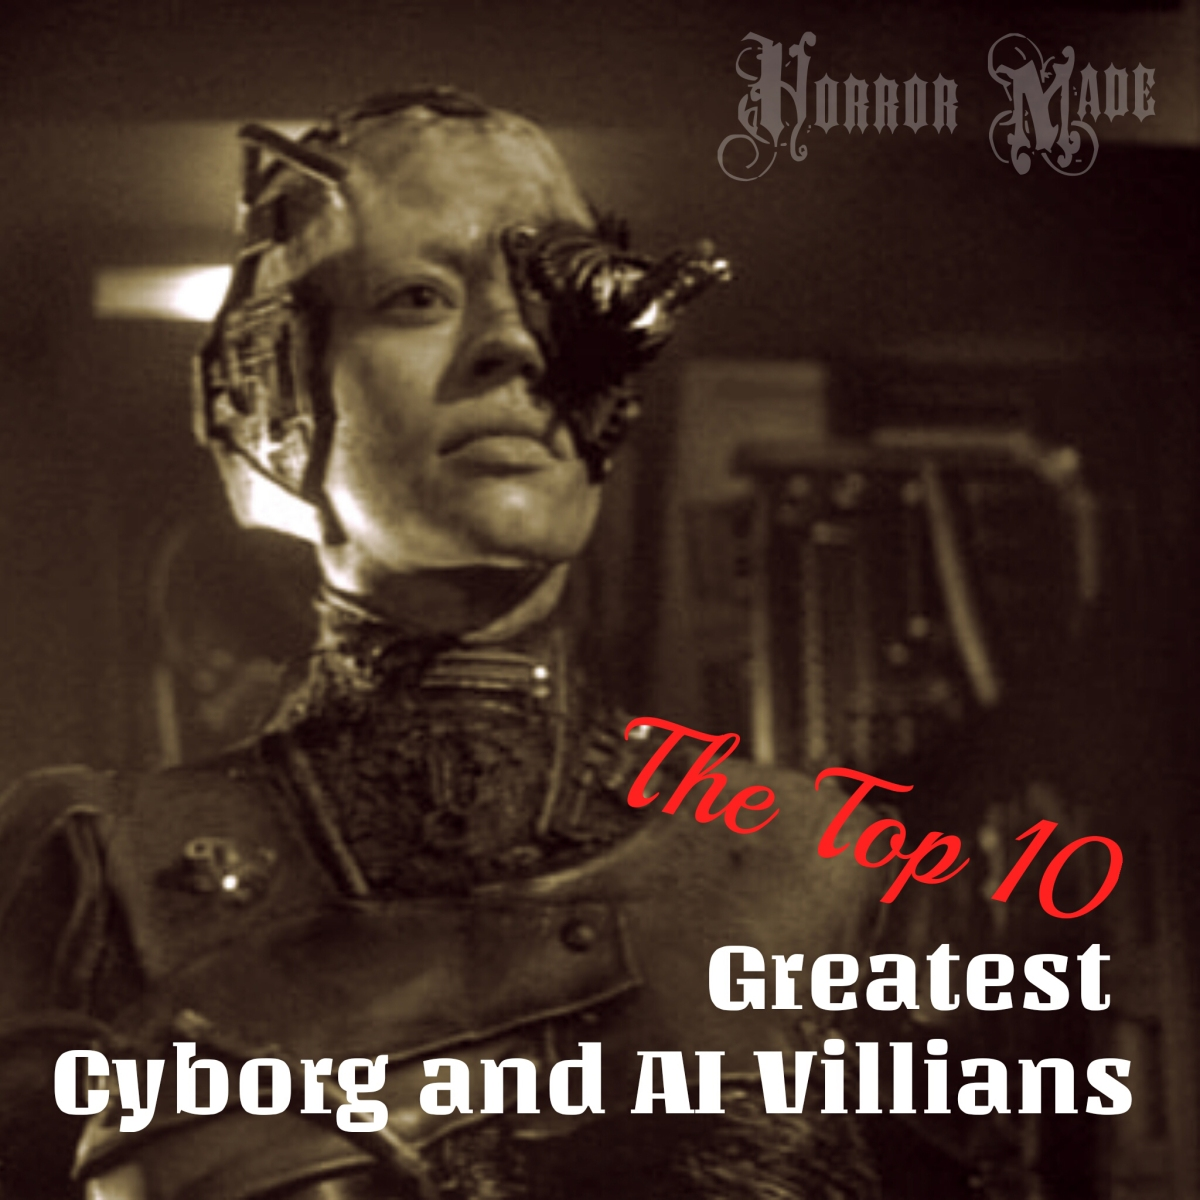 It's Here: The Top 10 Greatest Cyborg and AI Villains